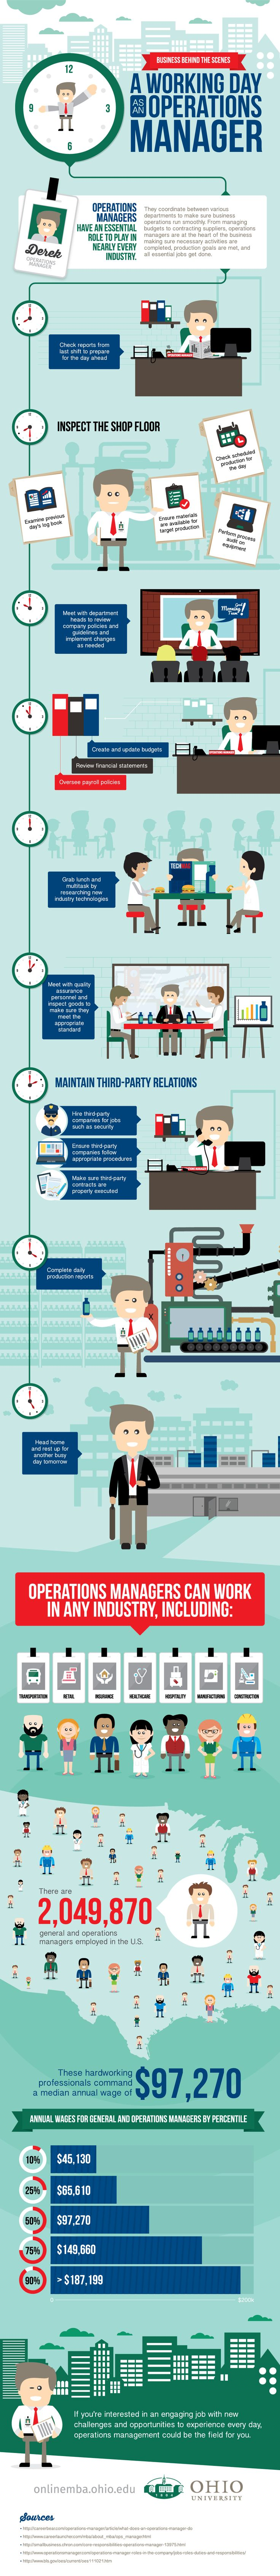 A Working Day as an #Operations #Manager. Don't miss out their daily #challenges! Do you recognize them? Check: http://www.toolshero.com/infographics/a-working-day-a-an-operations-manager/